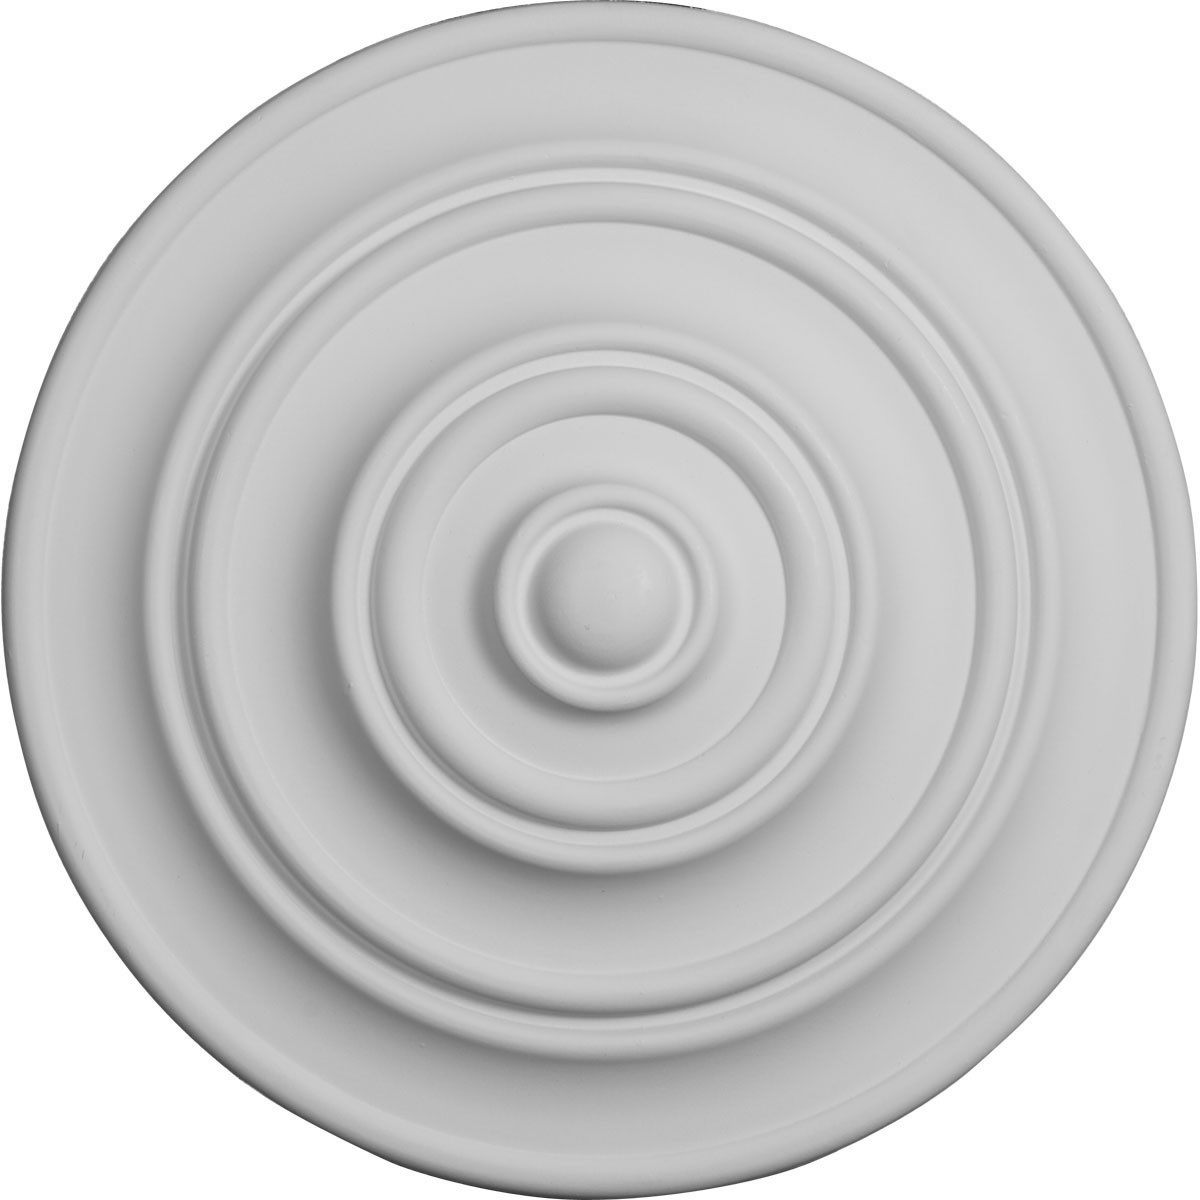 "EM-CM13CL - 13 1/4""OD x 1/2""P Classic Ceiling Medallion (Fits Canopies up to 4 1/8"")"